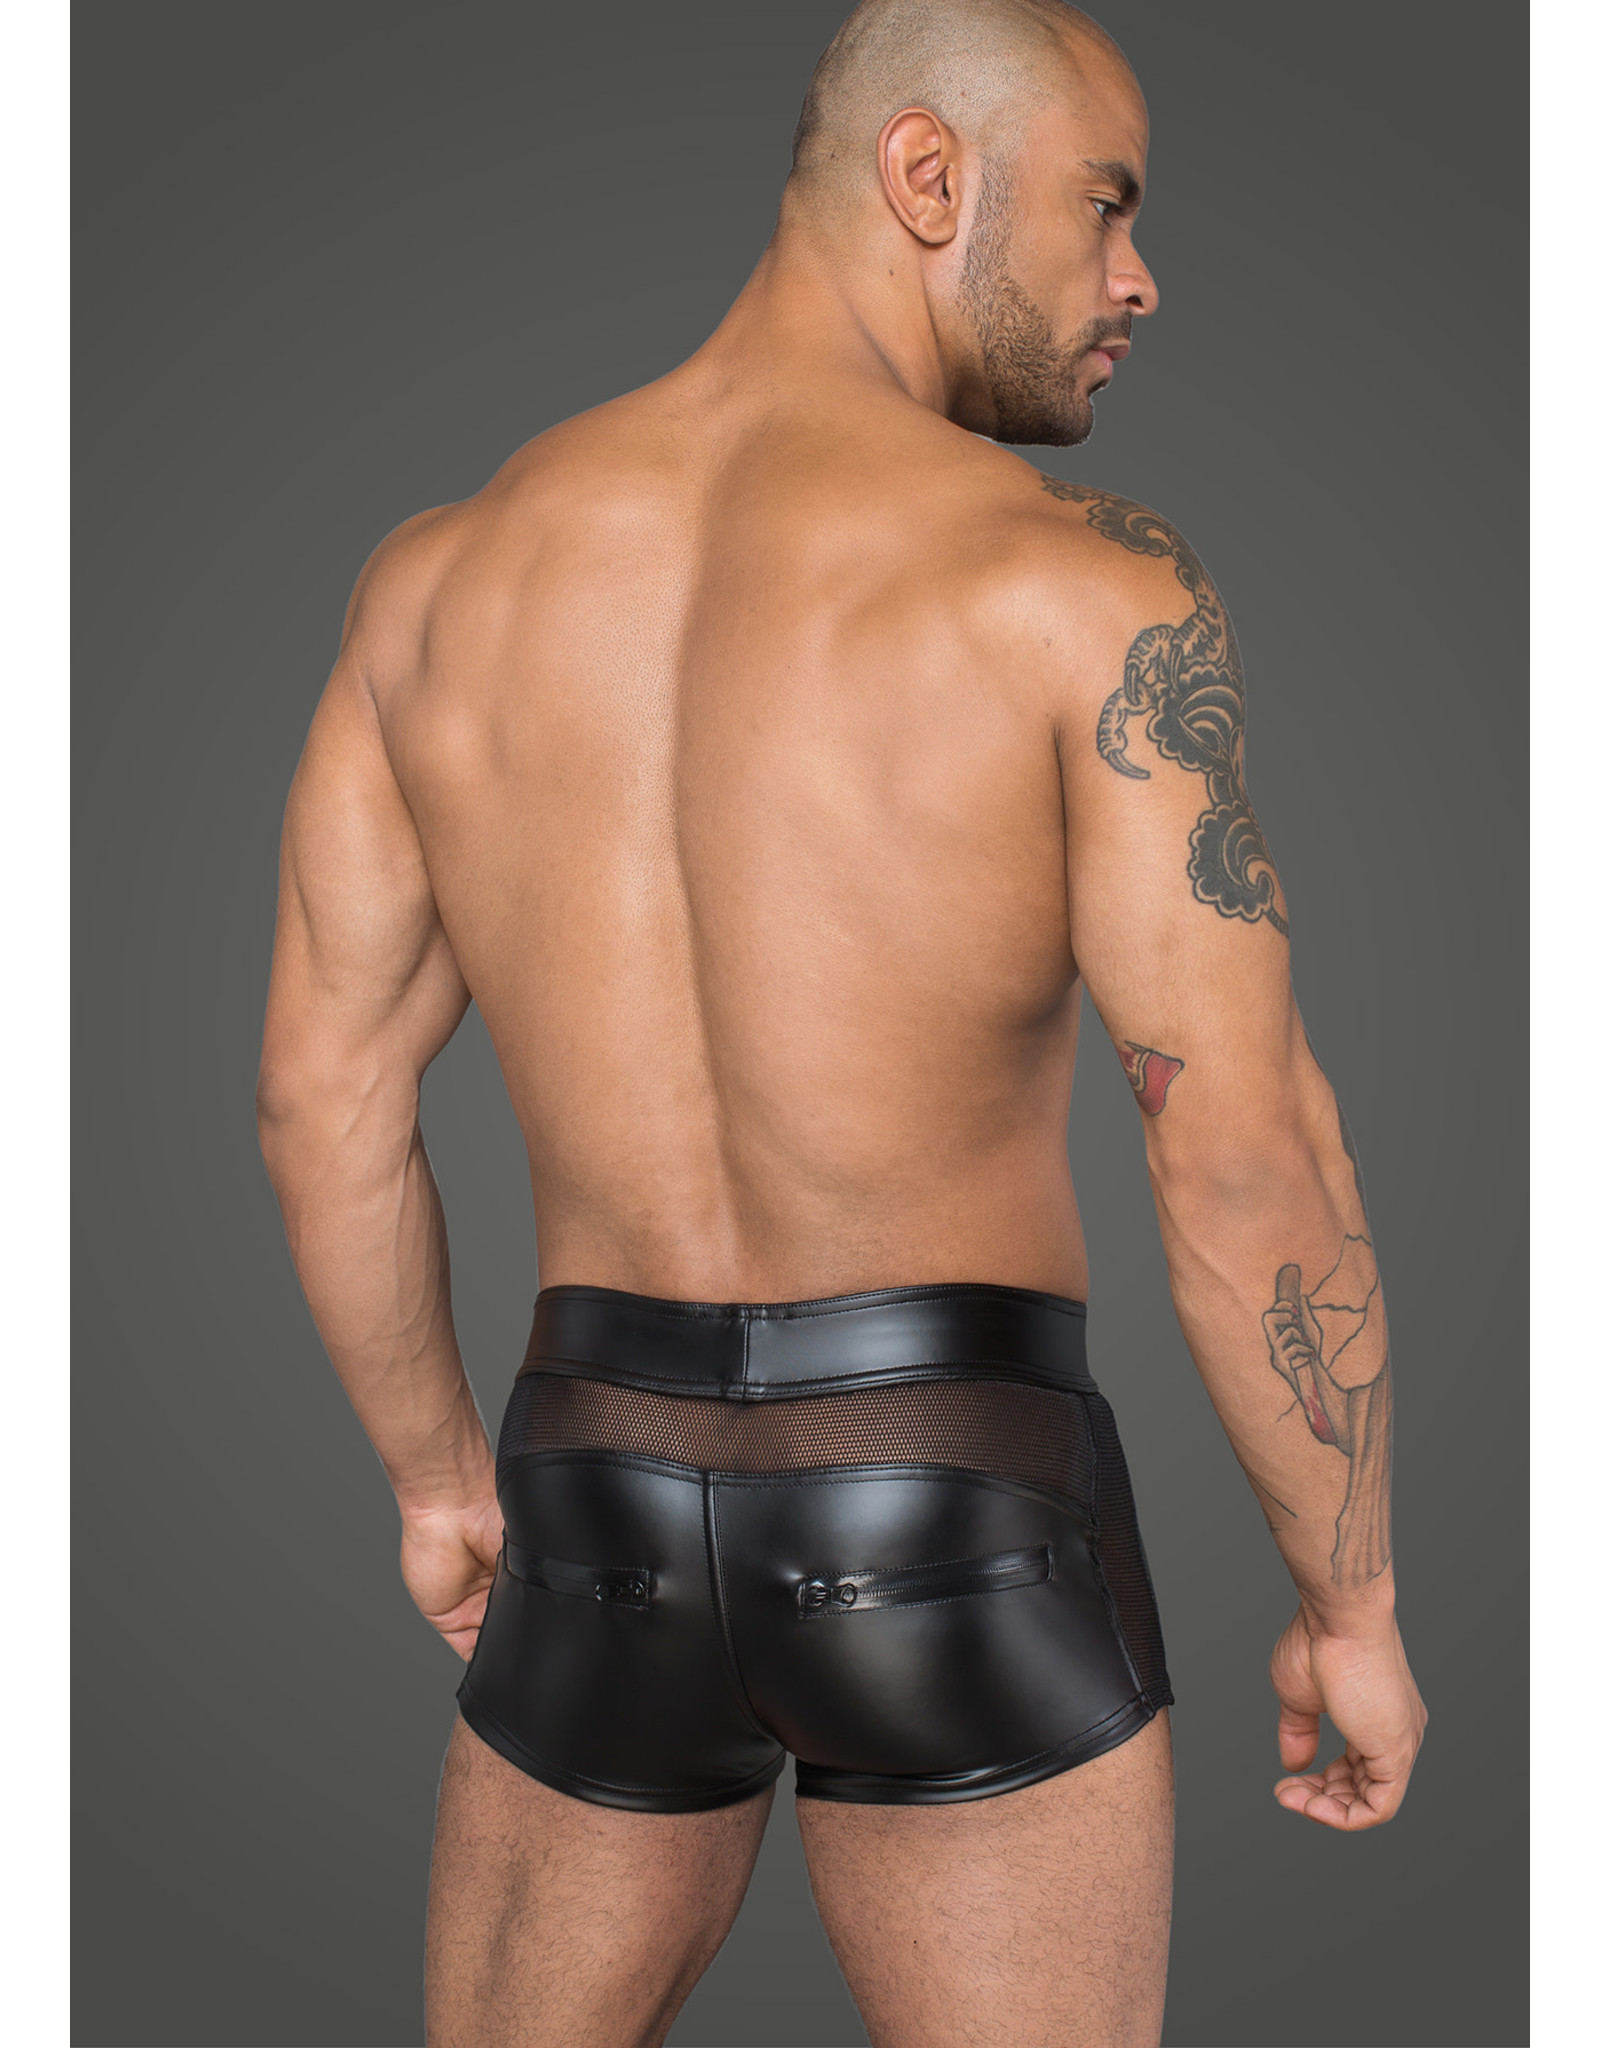 NOIR HANDMADE - MEN'S WET LOOK SHORTS AND 3D NET - SMALL